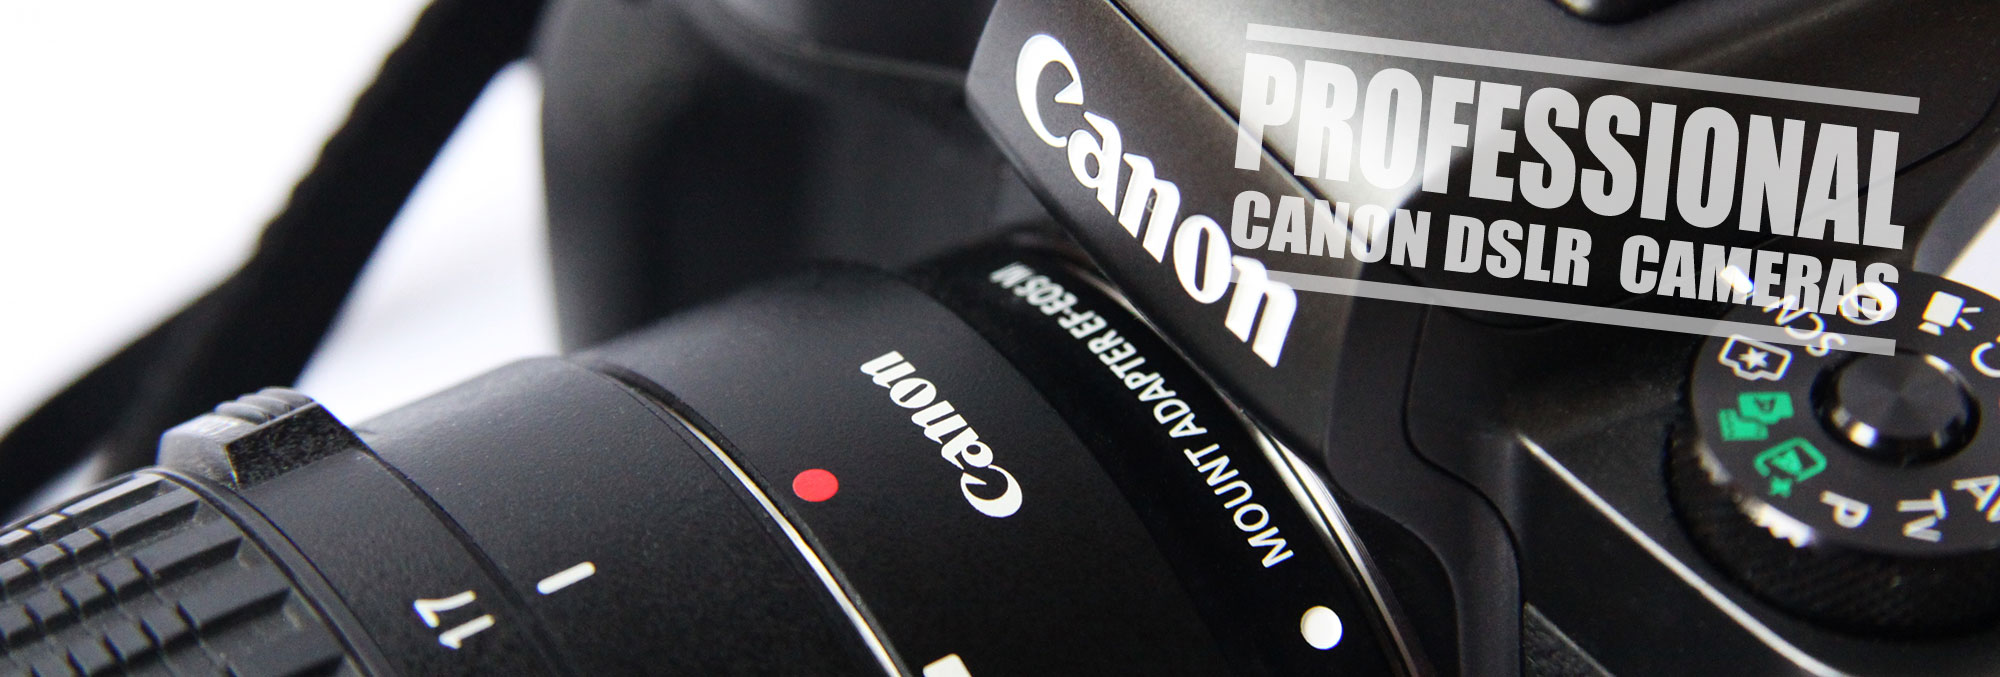 Best Canon Camera for Professional Photography